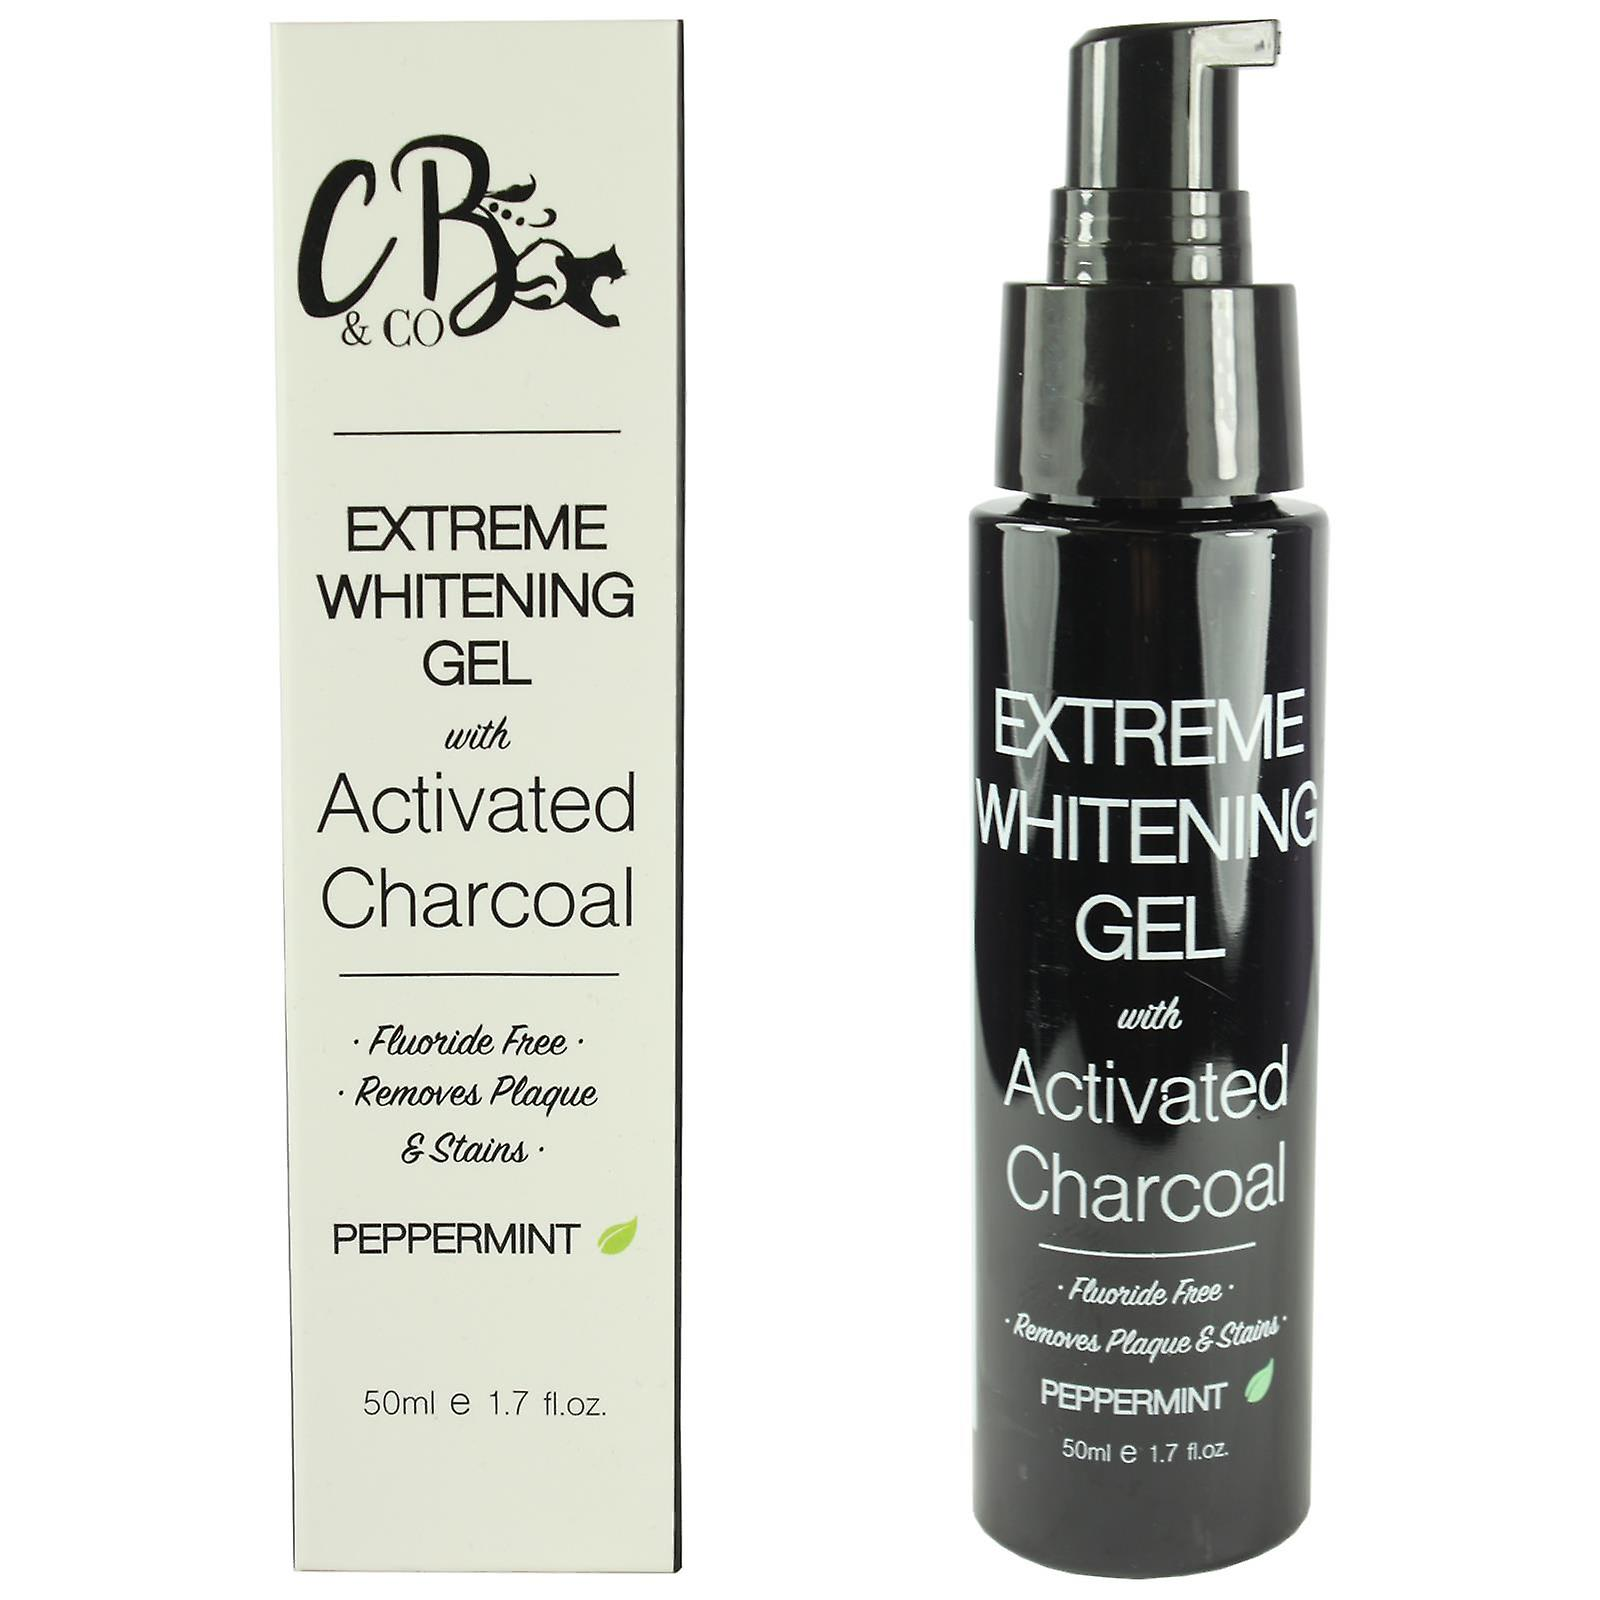 CB & Co Extreme Whitening Gel With Activated Charcoal 50ml